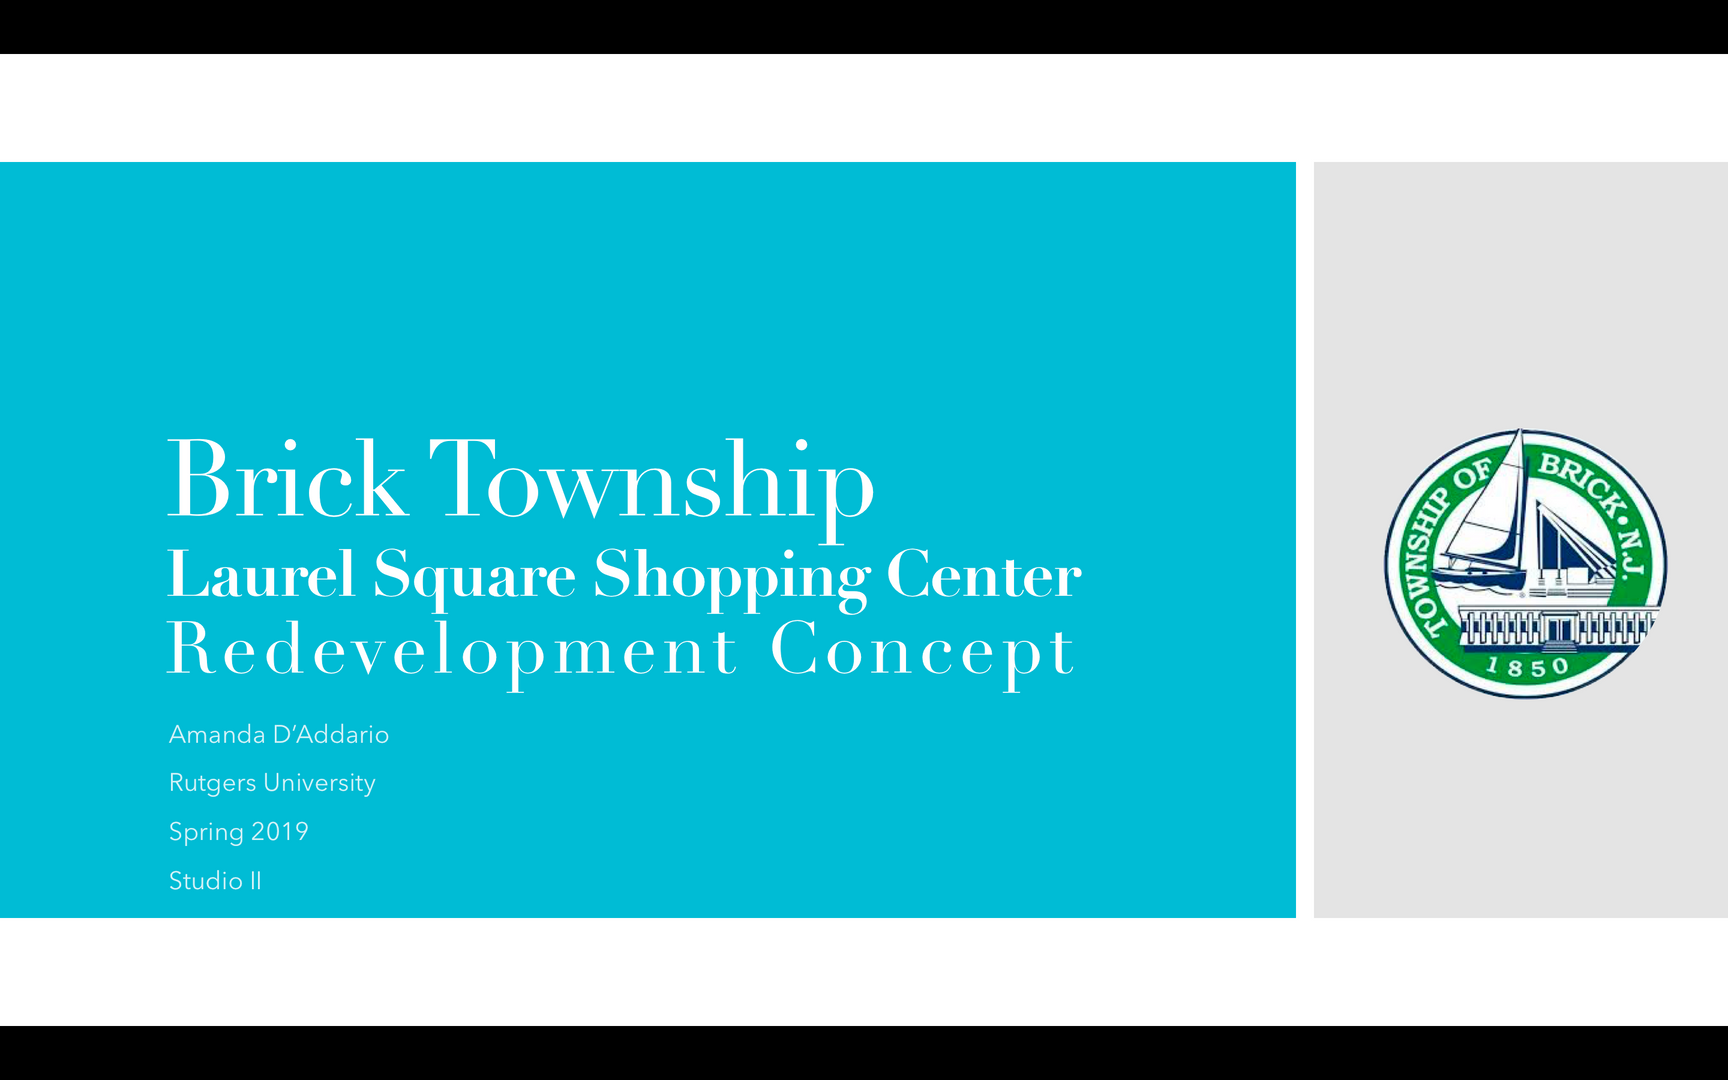 A re-design and re-habilitation concept project for the Brick Township Laurel Square Shopping Center